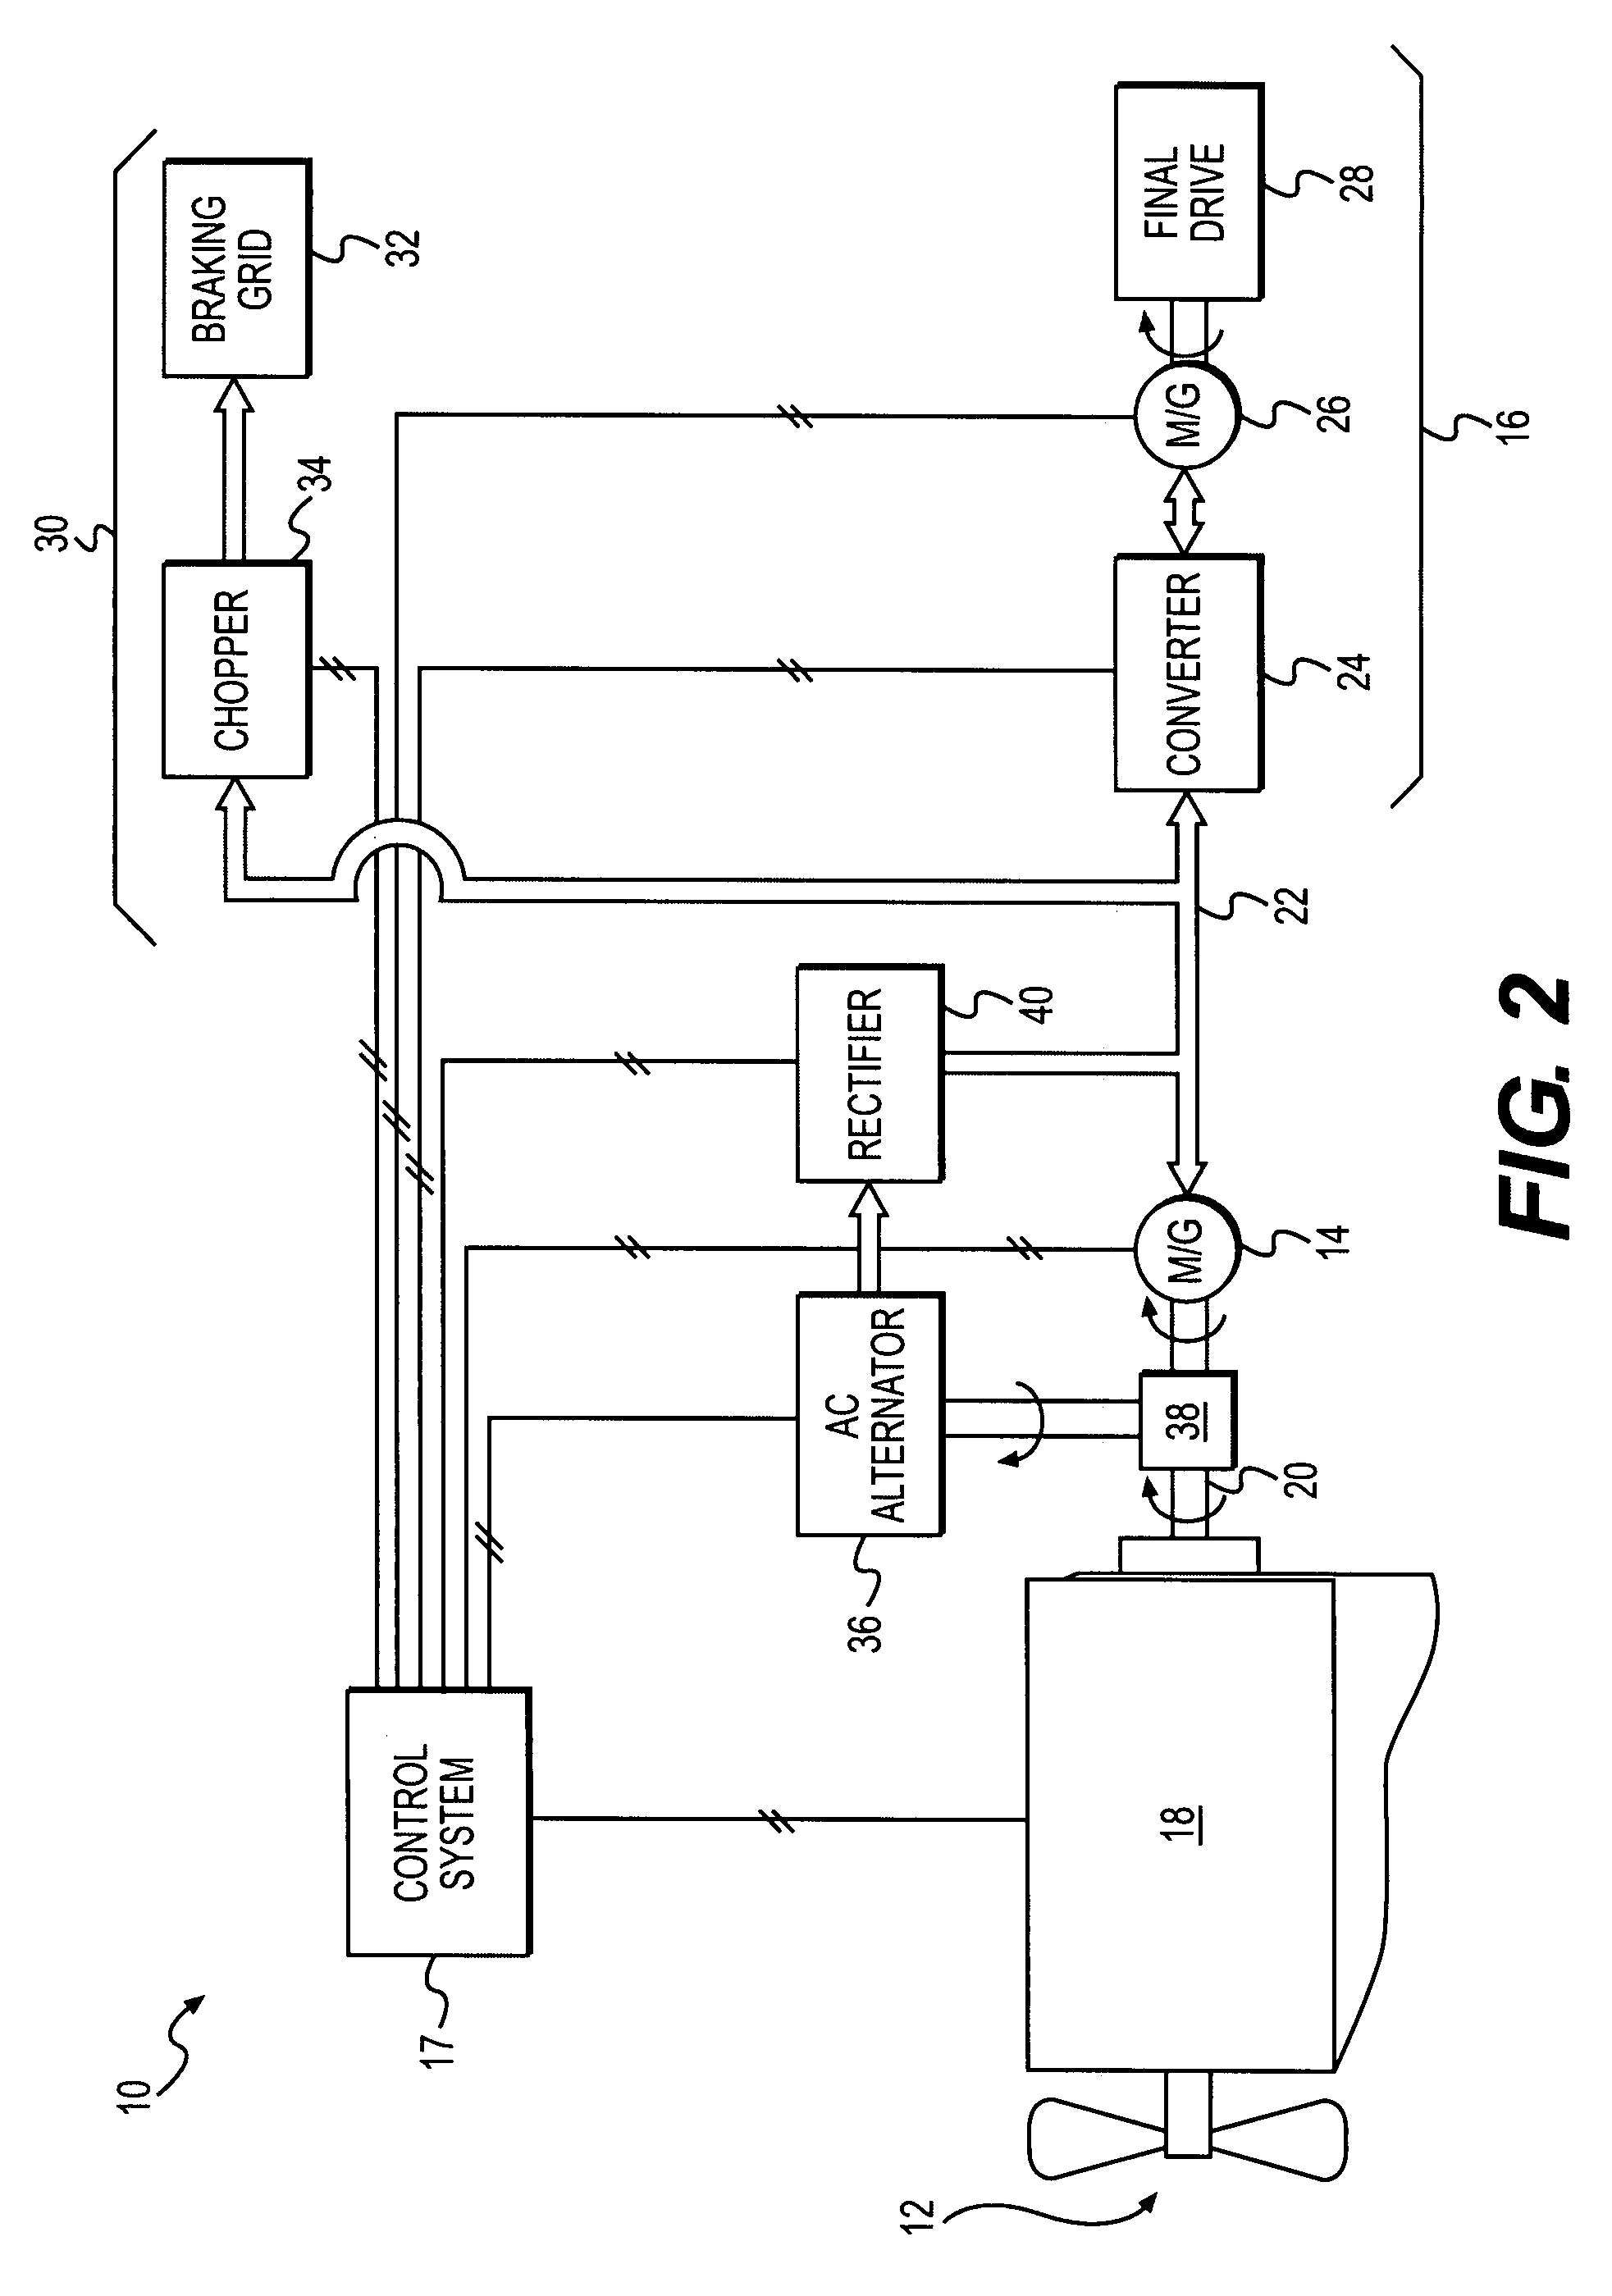 Brevet Us7812555 Electric Powertrain System Having Bidirectional Is The Dc Motor Circuit Which Allows Forward And Reverse Patent Drawing